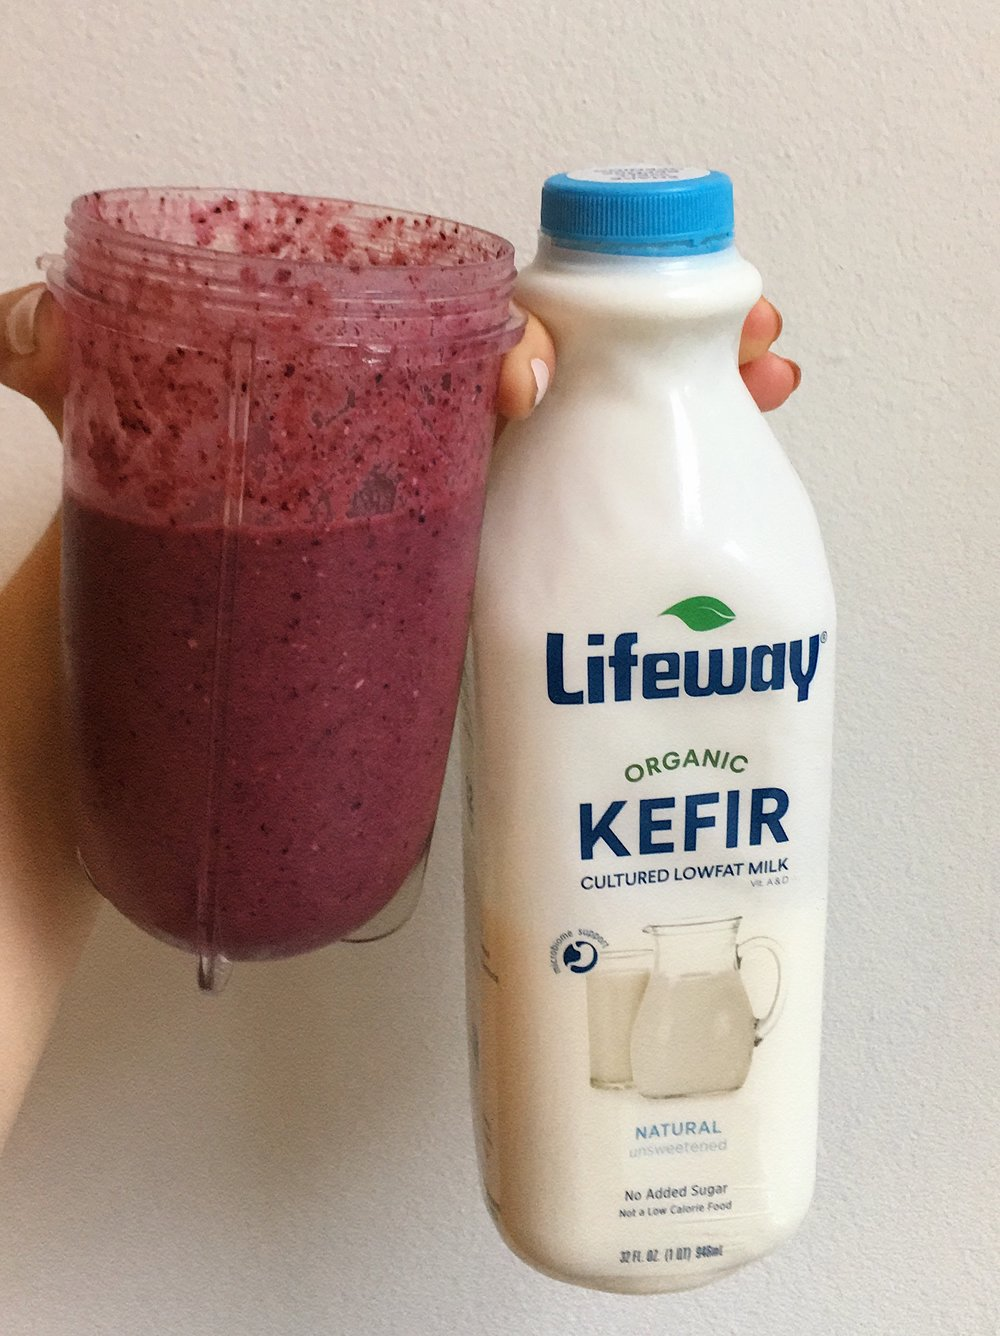 Blueberry smoothie with Lifeway Kefir